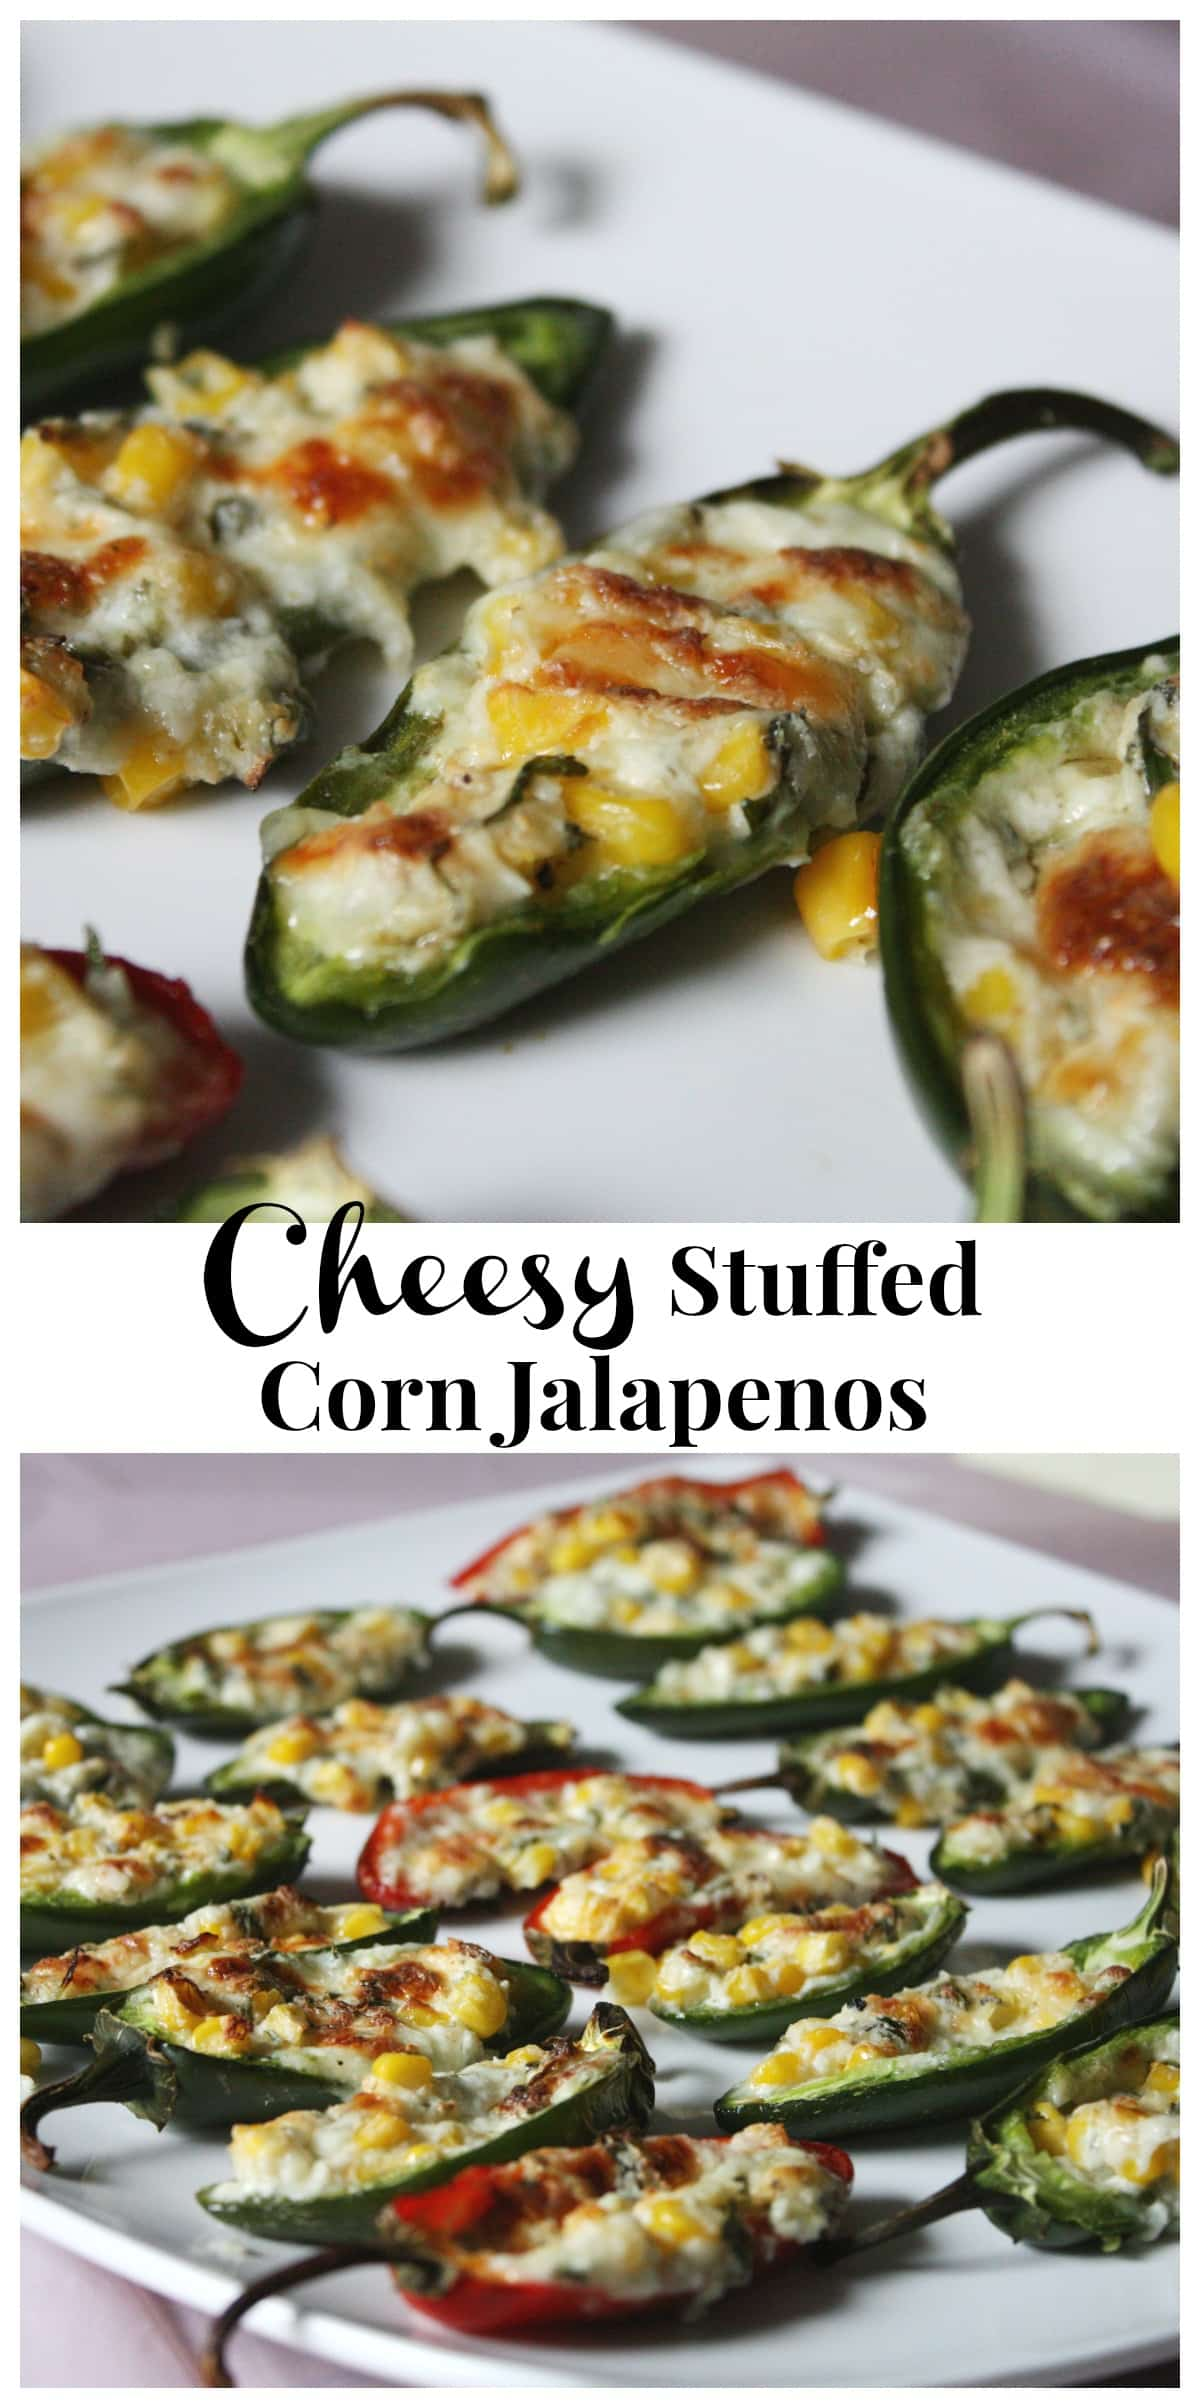 Cheesy Stuffed Corn Jalapenos || Aggie's Kitchen